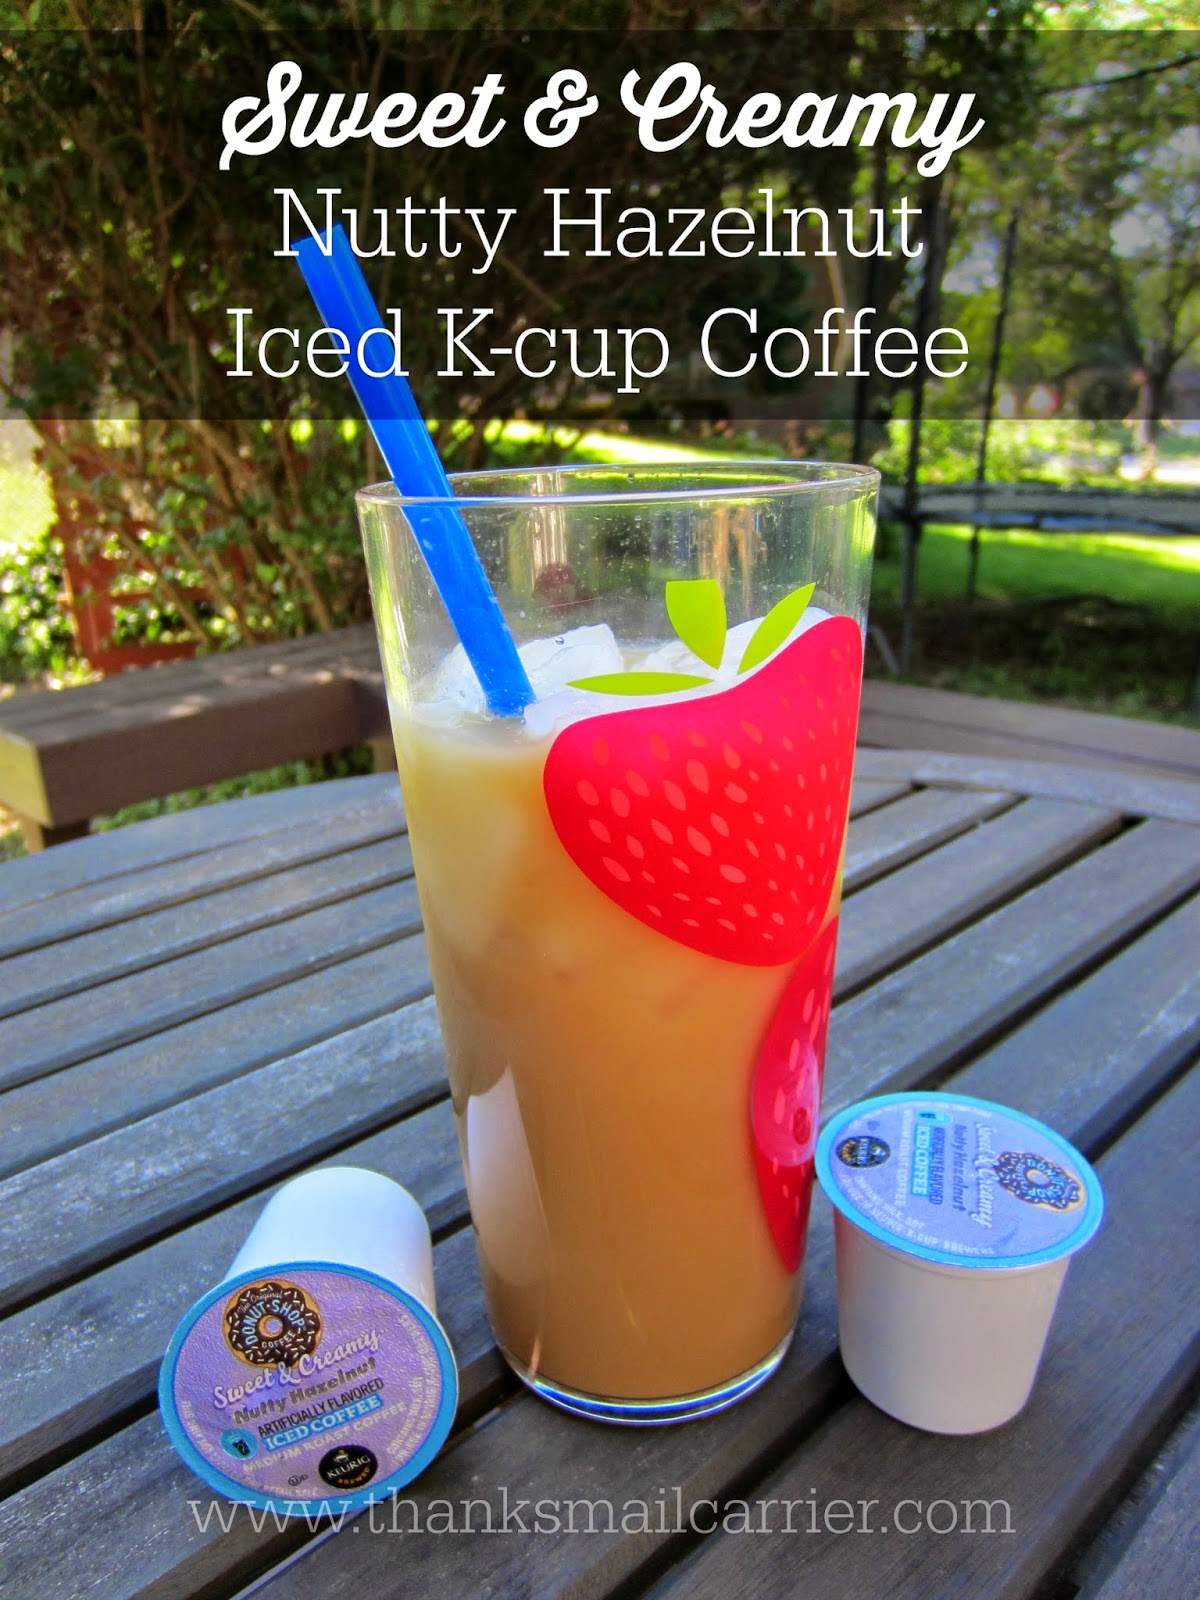 Sweet & Creamy Nutty Hazelnut